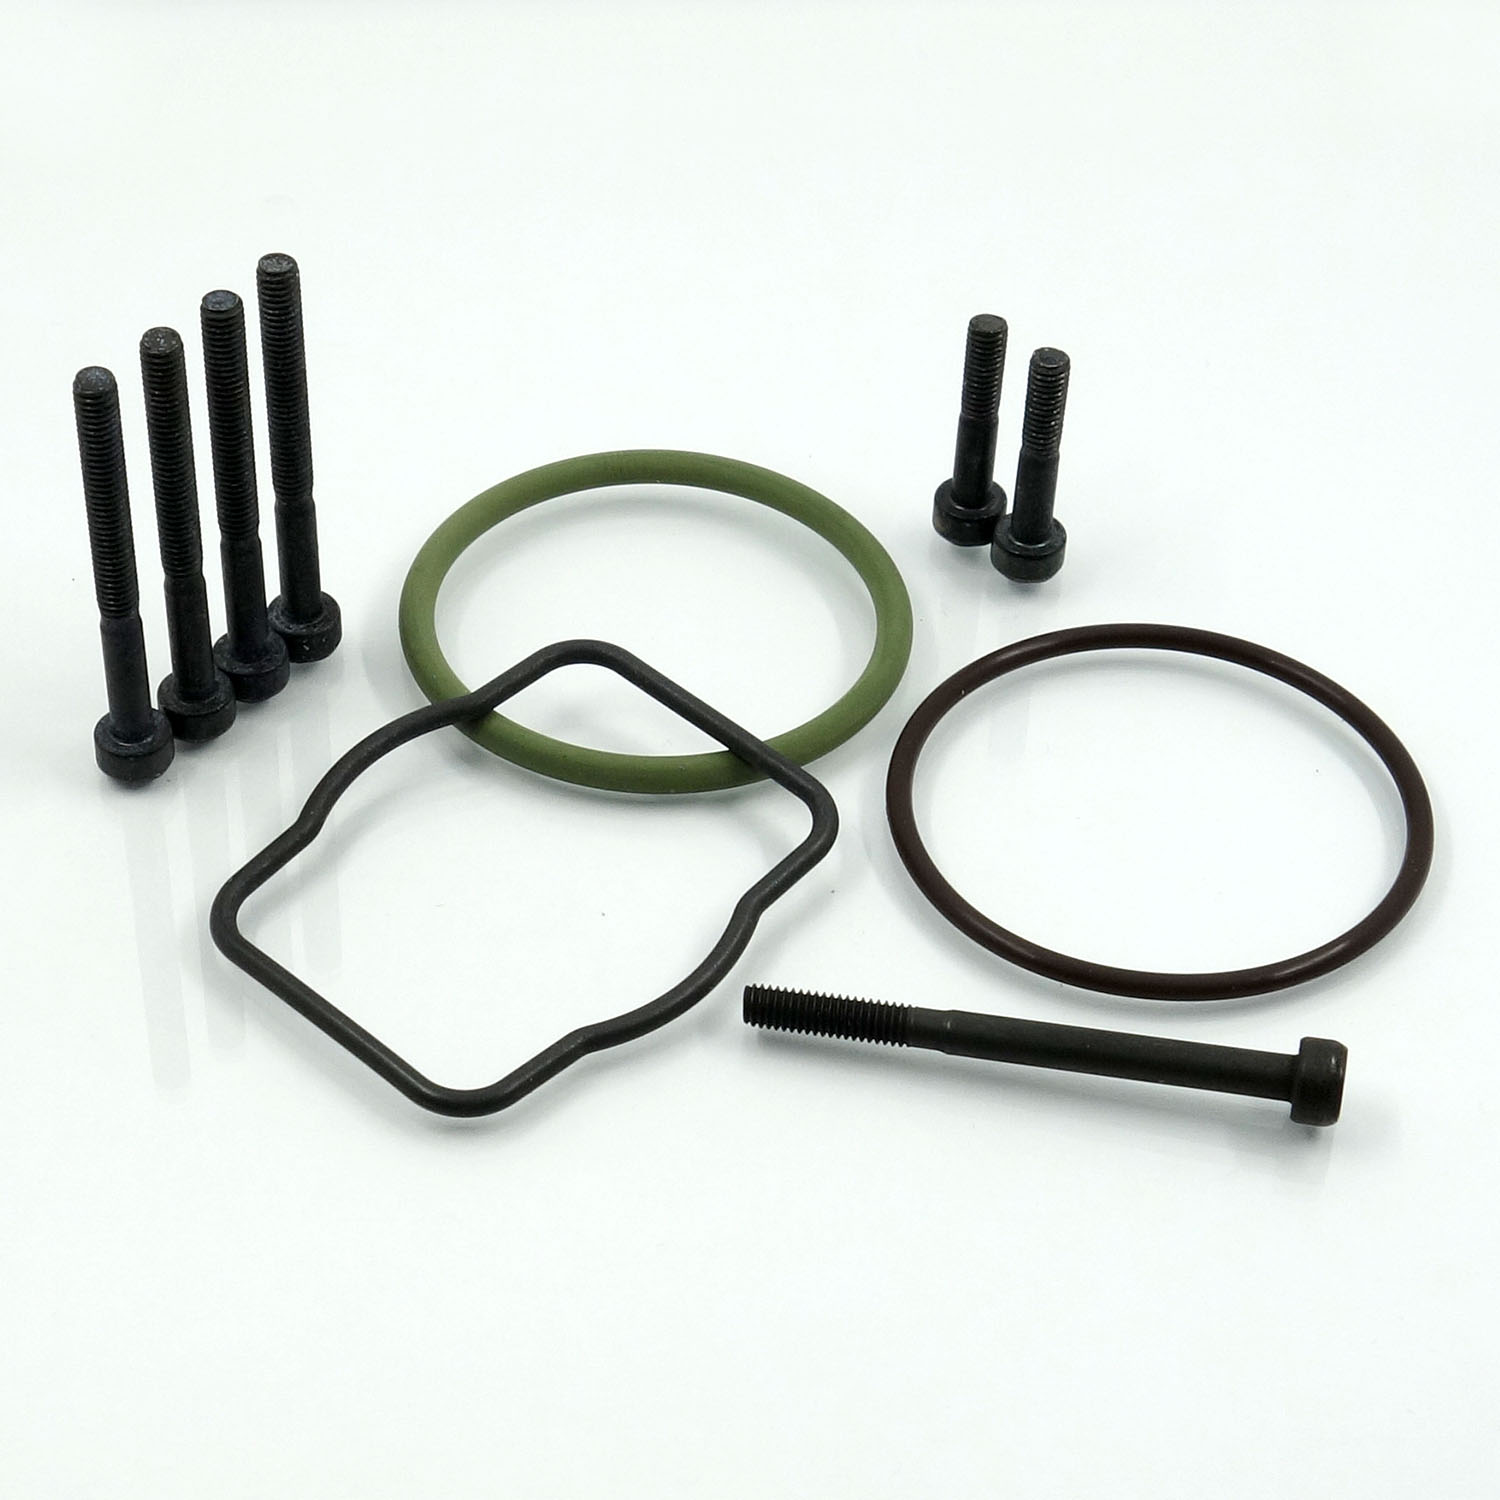 EXTERNAL O-RING GASKET KIT